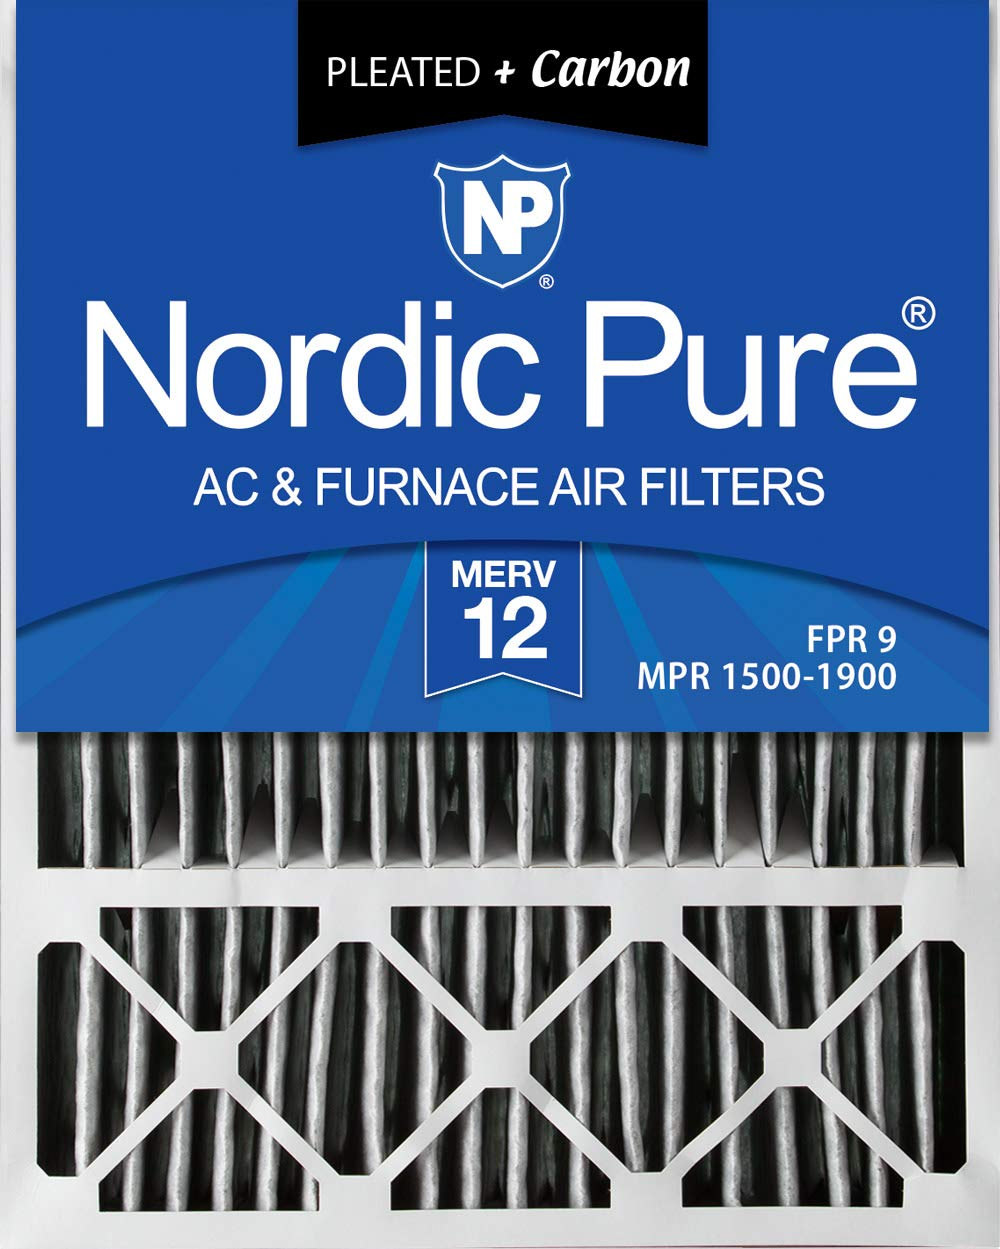 Nordic Pure 20x25x5 (4-3/8 Actual Depth) MERV 12 Pleated Plus Carbon Lennox X6673 Replacement AC Furnace Air Filter, 1 PACK